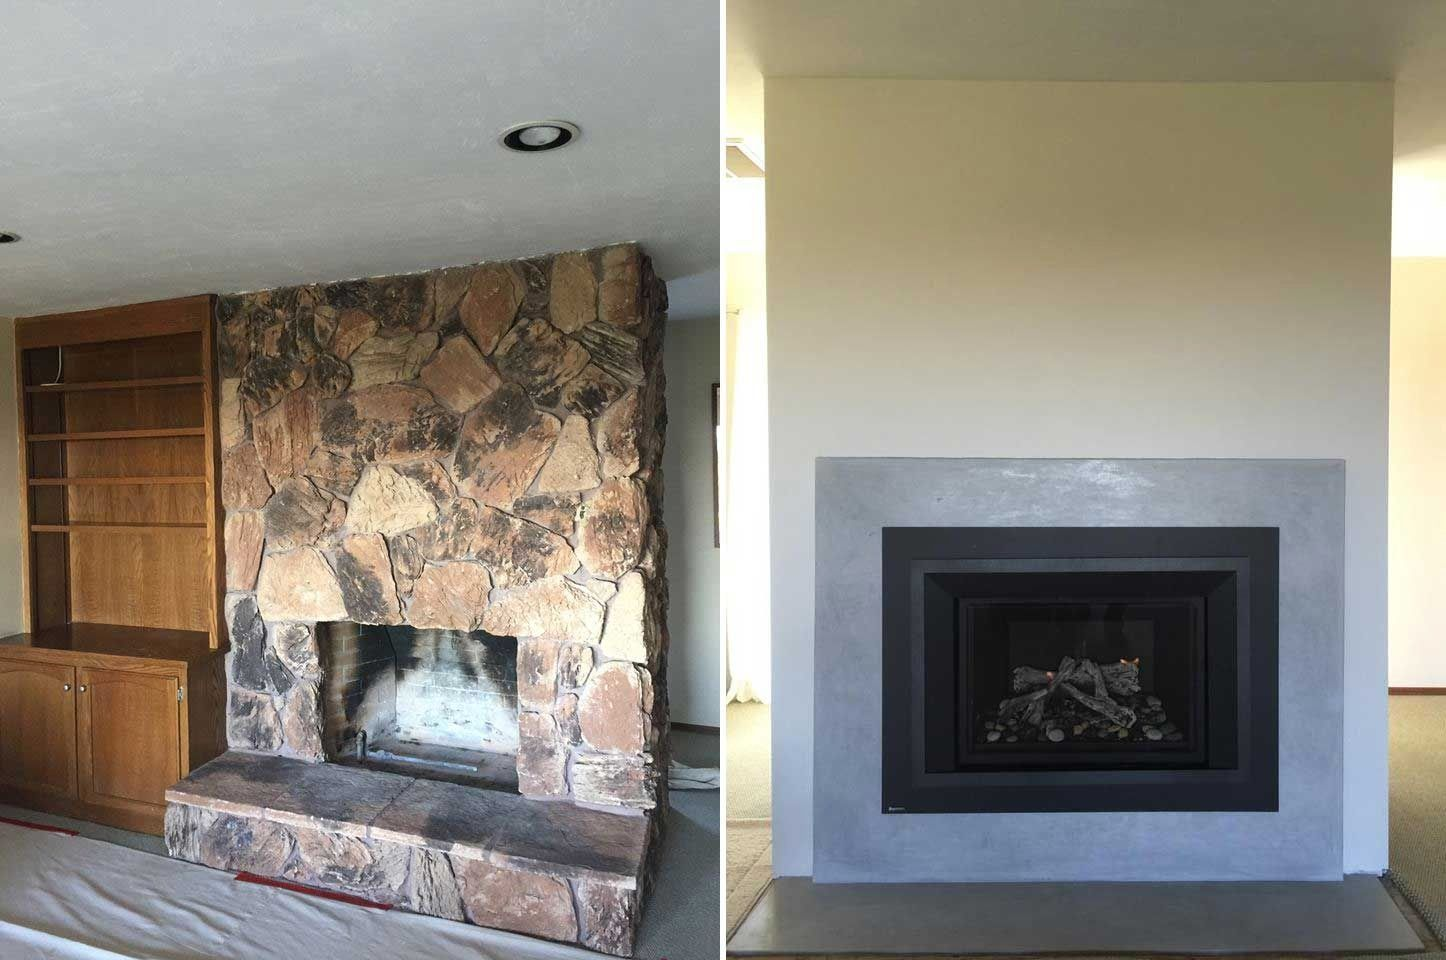 how to remove tile from wall around fireplace